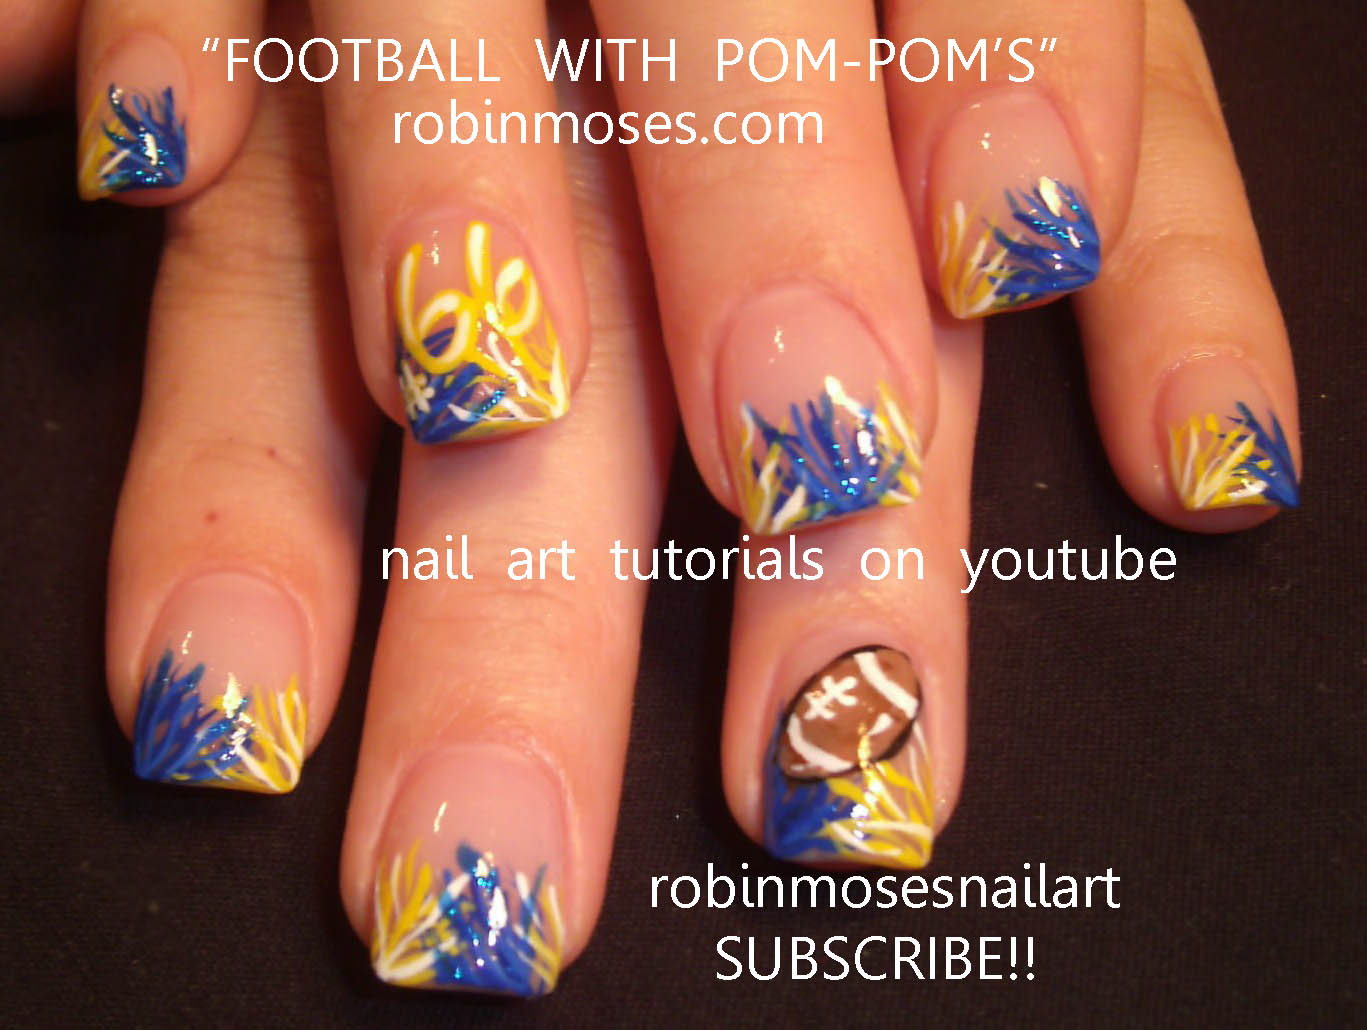 UFC NAILS, TAPOUT nails, ultimate fighting nails, sports nails, football nails, pom poms nails